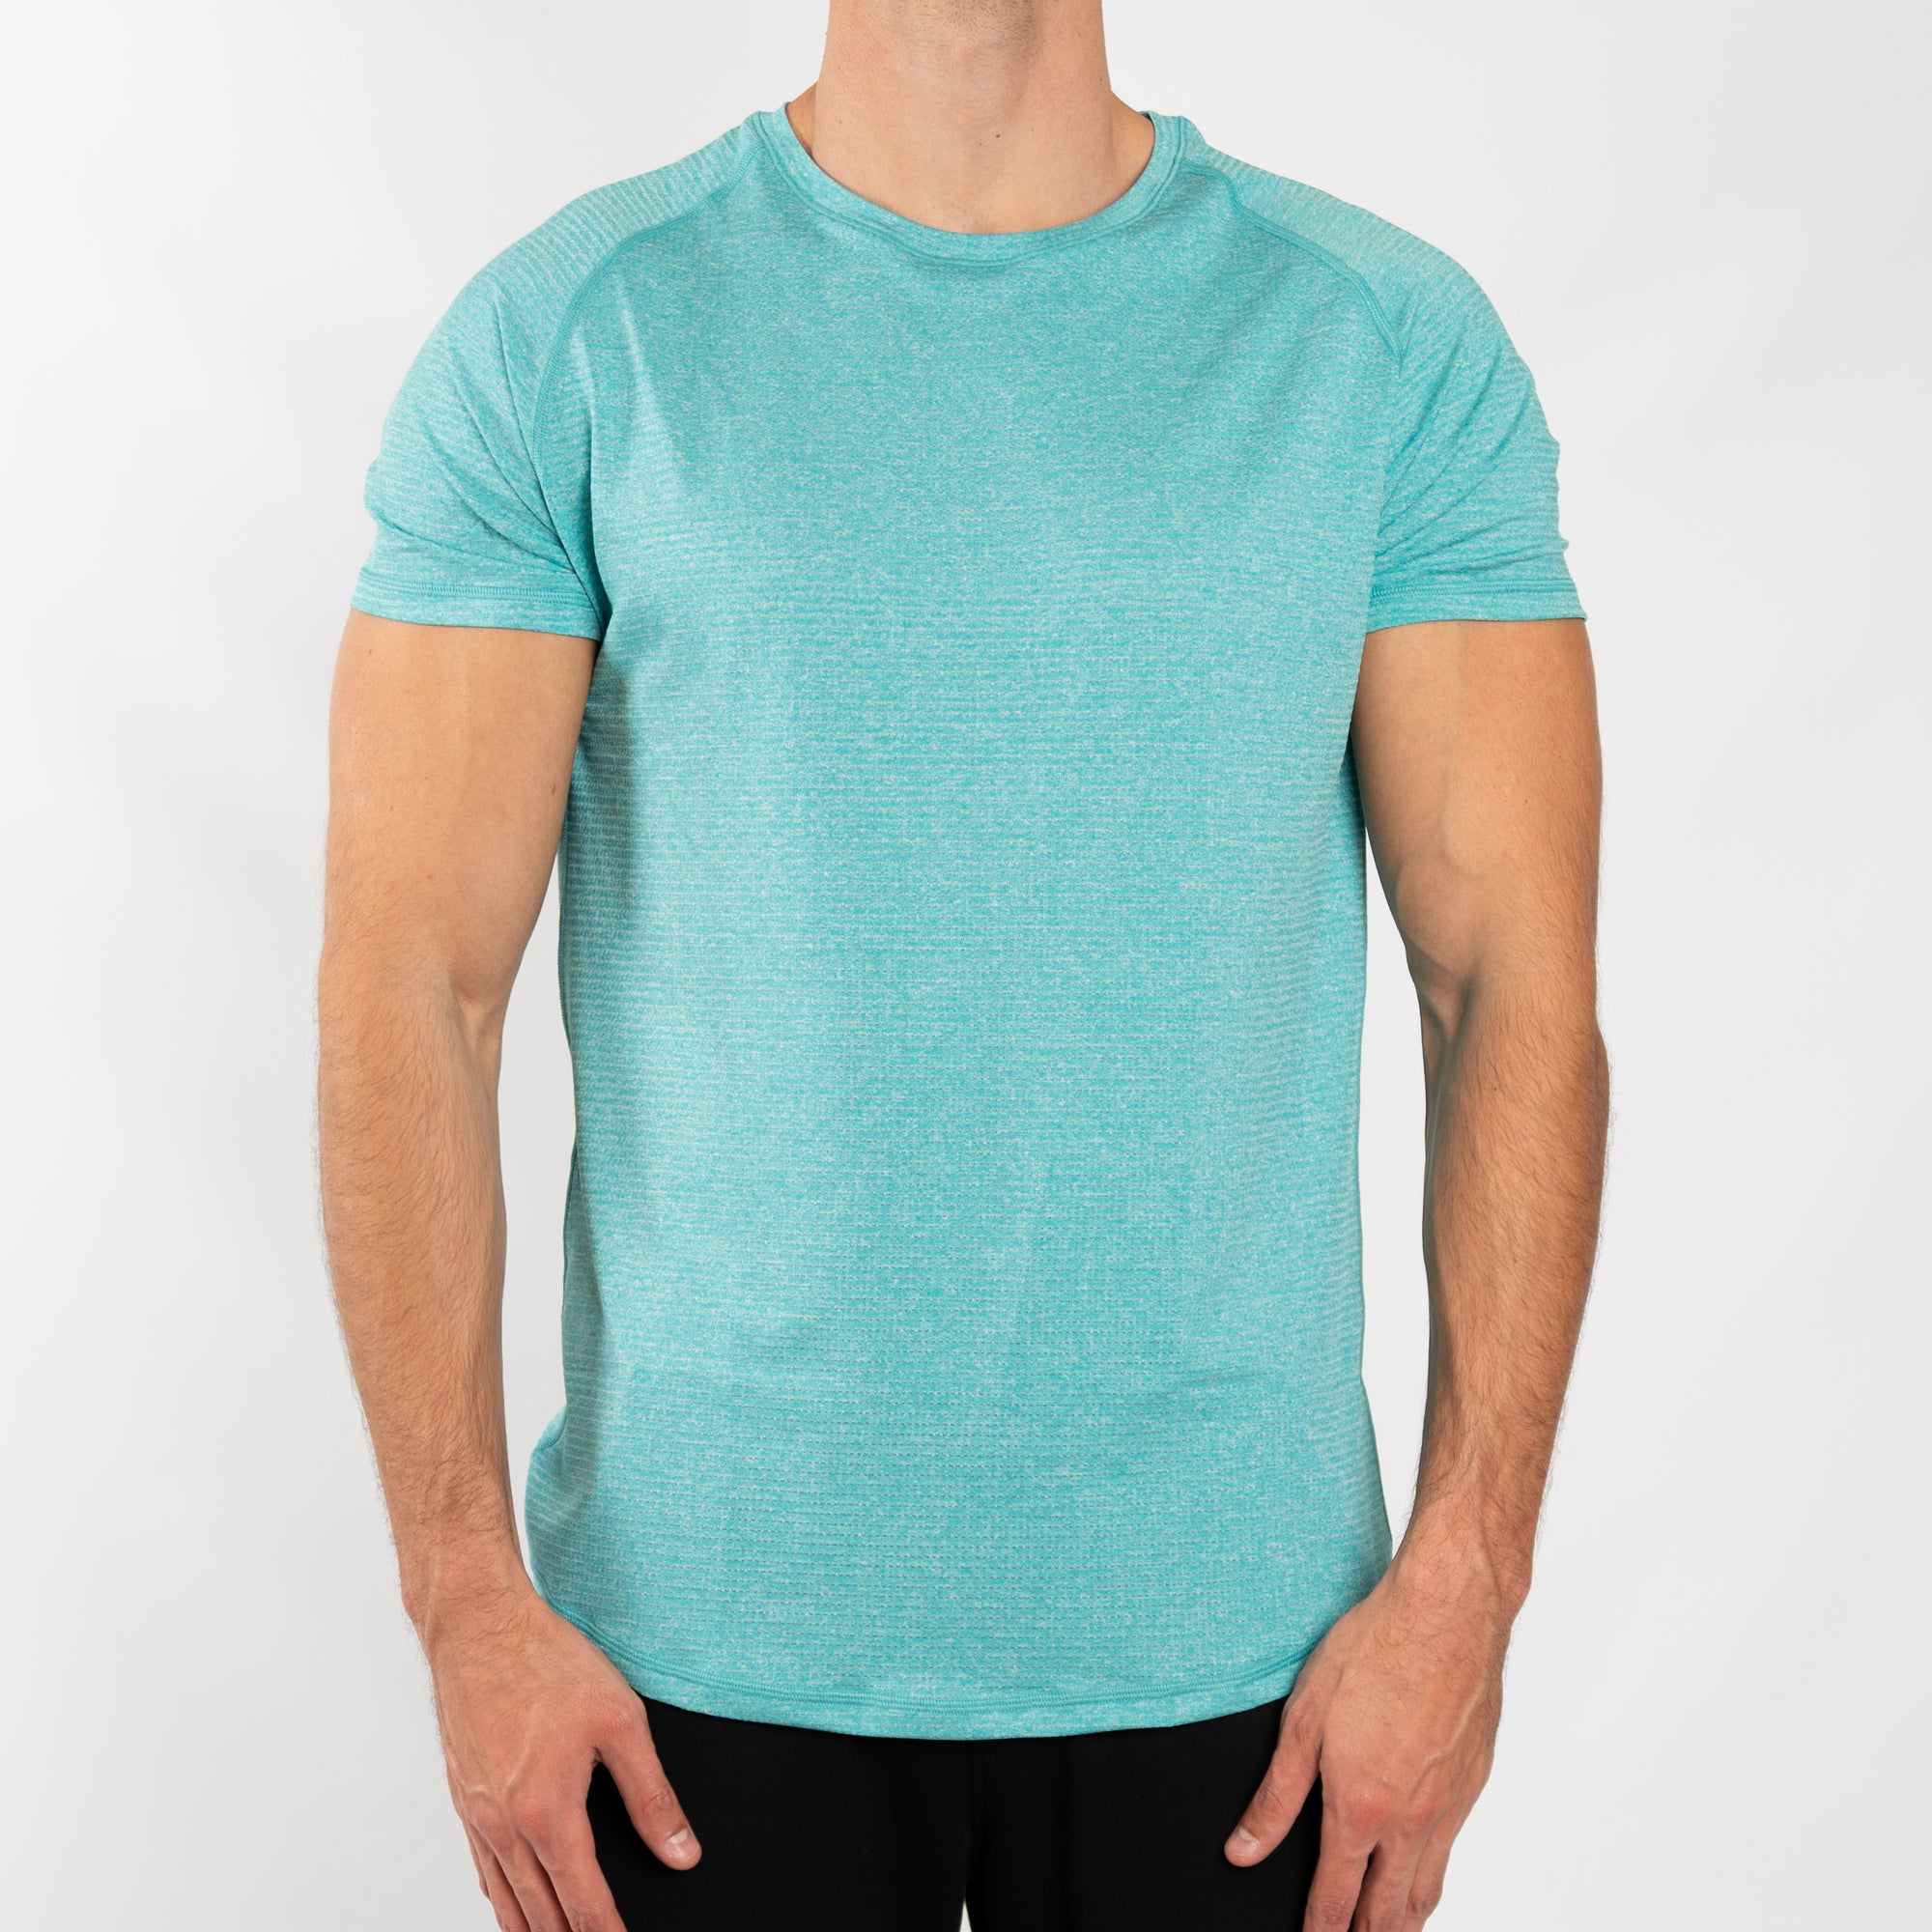 Men's Performance Tee in Baltic - Southern Athletica